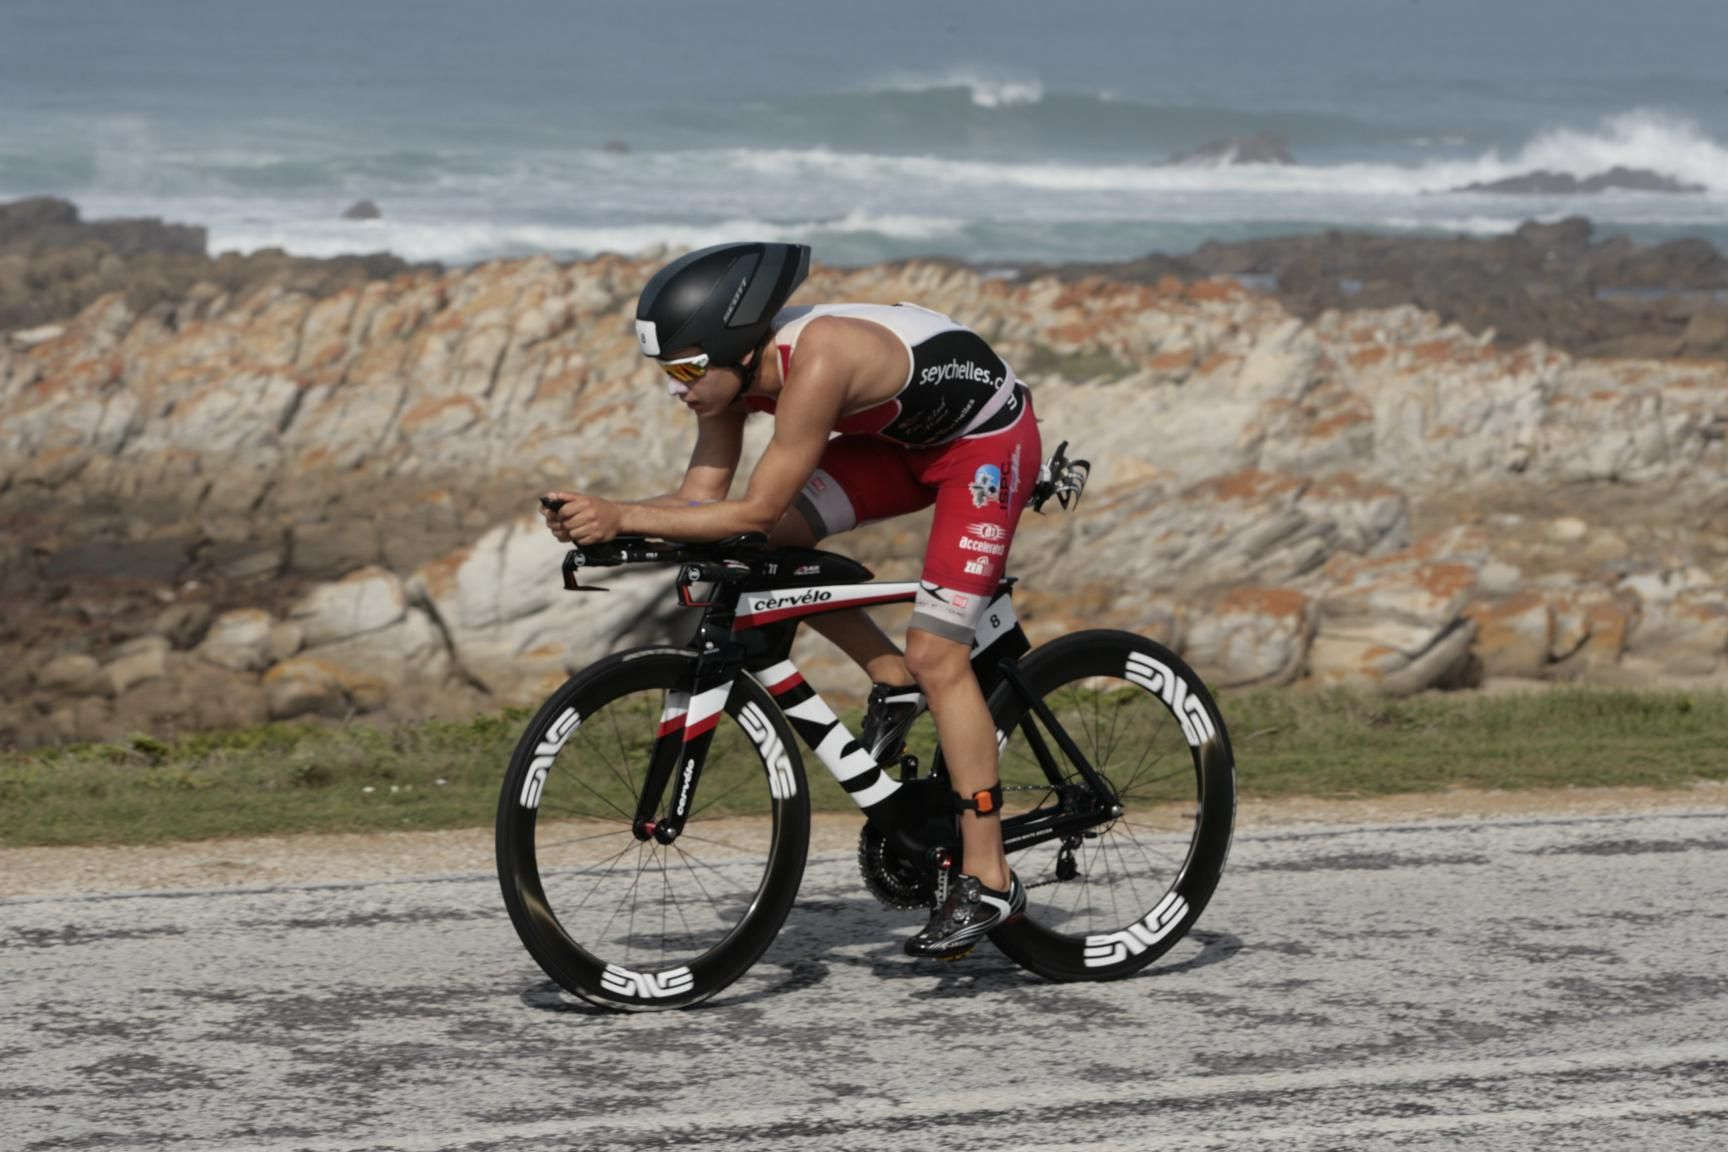 Ironman South Africa 2013